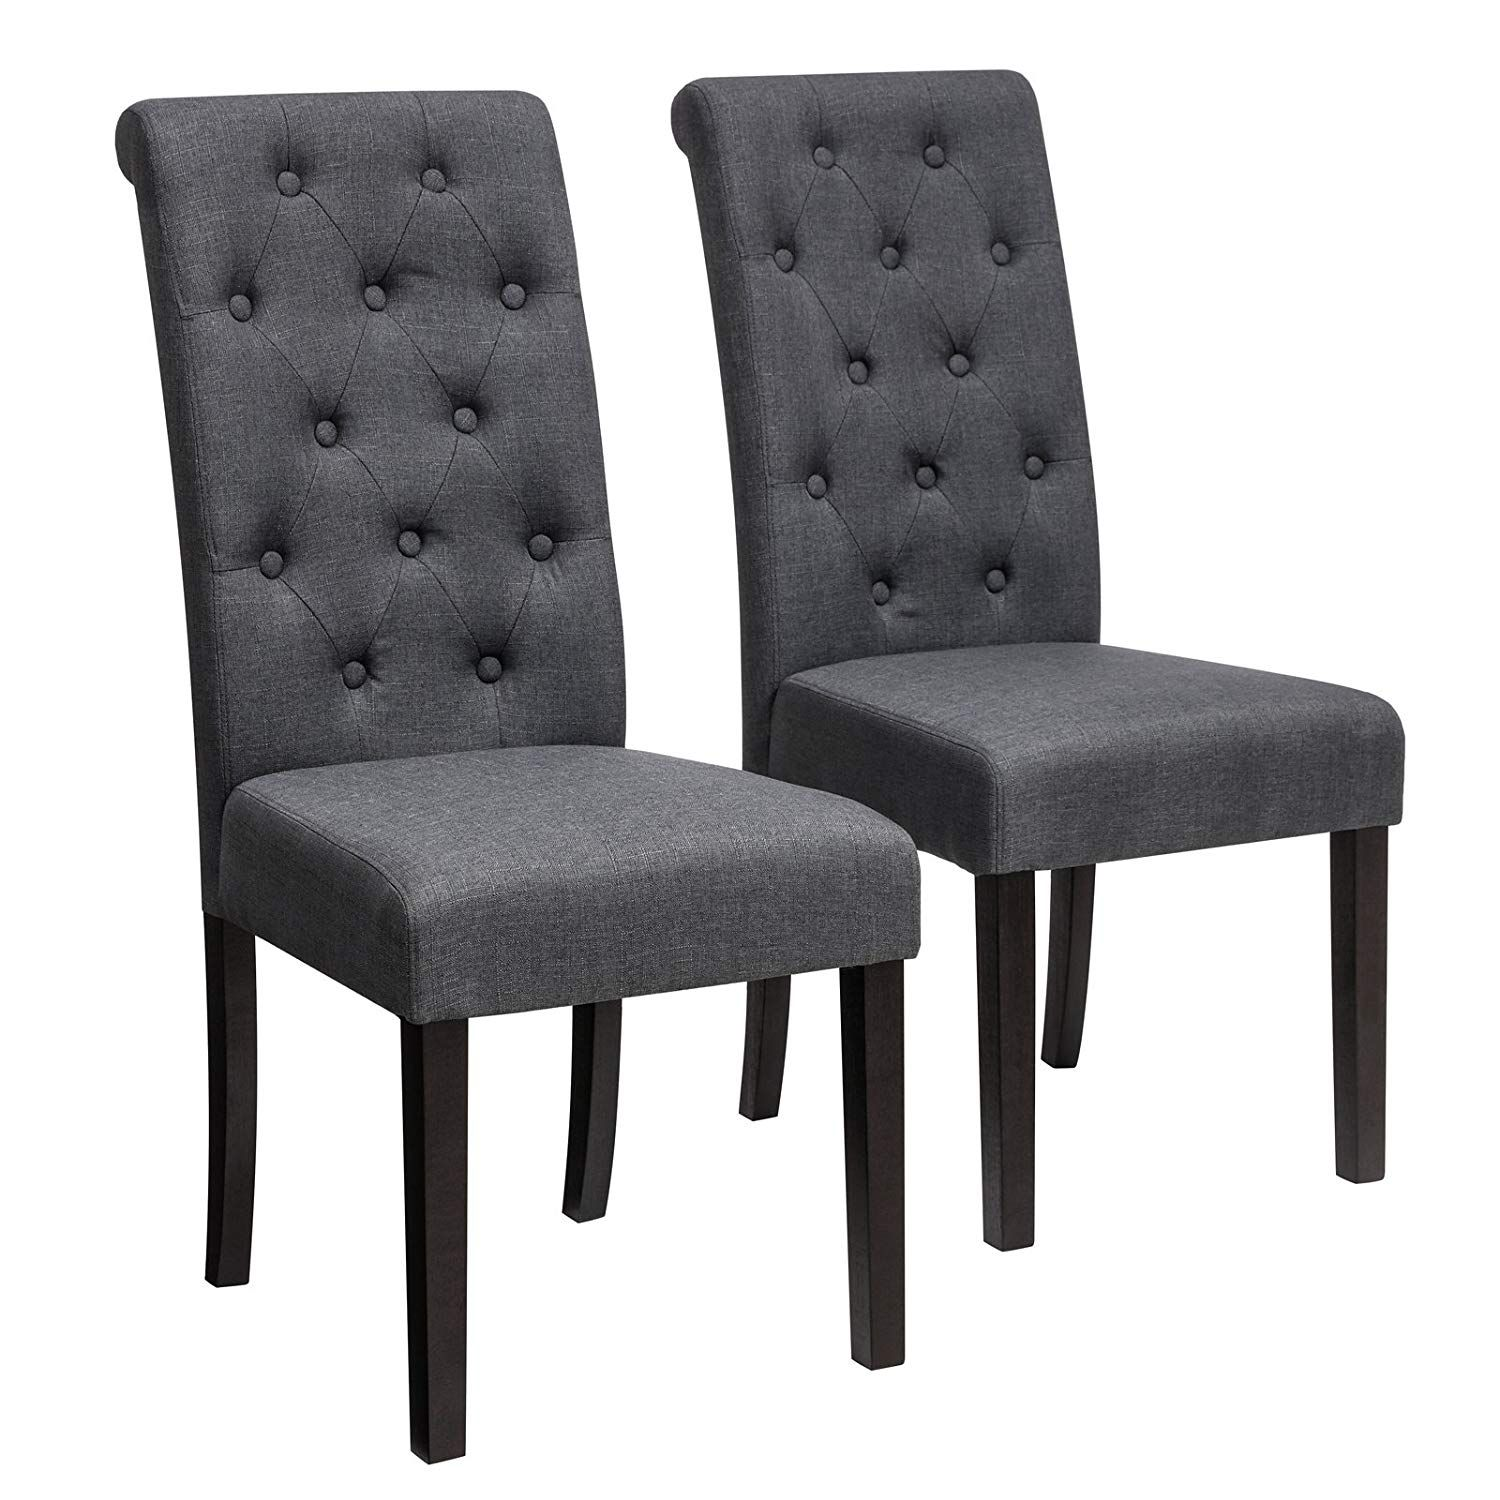 Songmics Fabric Upholstered Dining Chair Set Of 2 Button Tufted Parson Chair Solid Wood Legs Seat Height 18 5 Dining Chairs Upholstered Dining Chairs Chair Parsons chairs set of 2